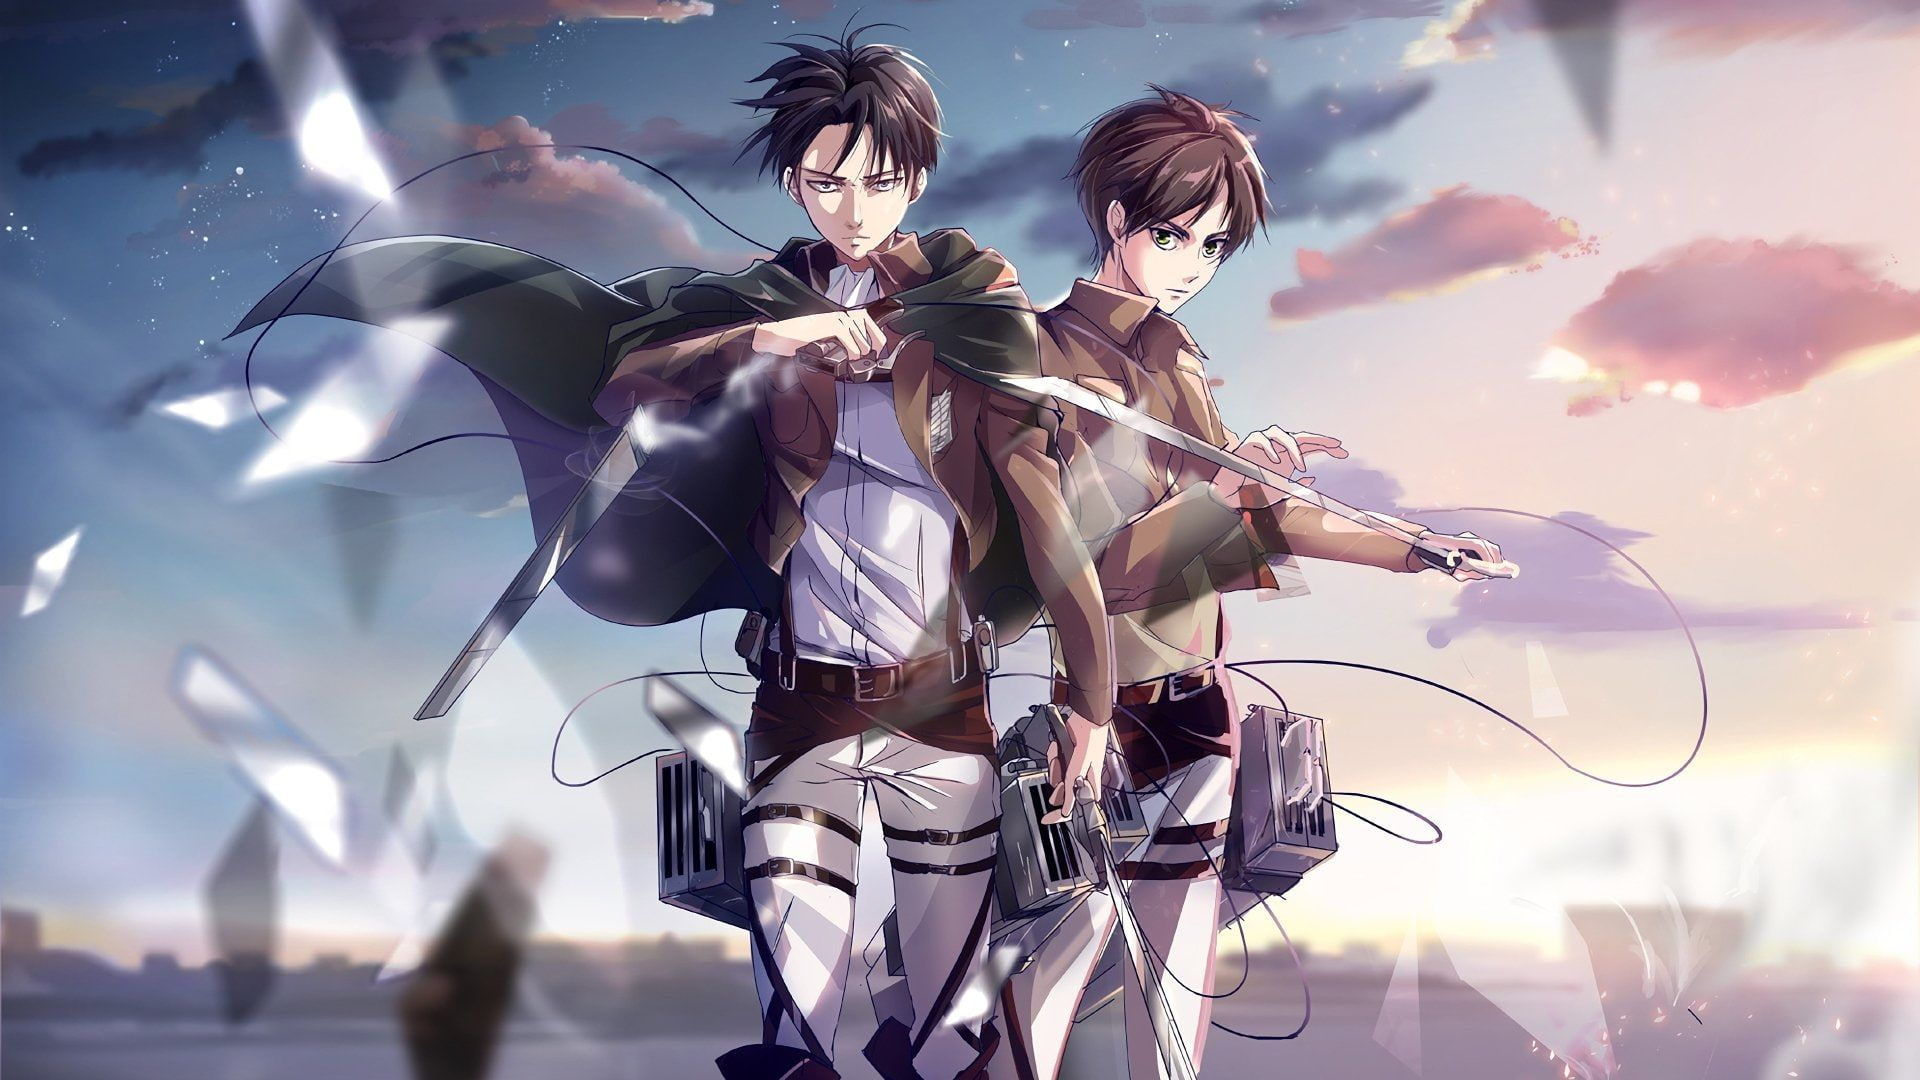 Anime Attack On Titan Eren Yeager Levi Ackerman 1080p Wallpaper Hdwallpaper Desktop Attack On Titan Art Attack On Titan Season Attack On Titan Anime